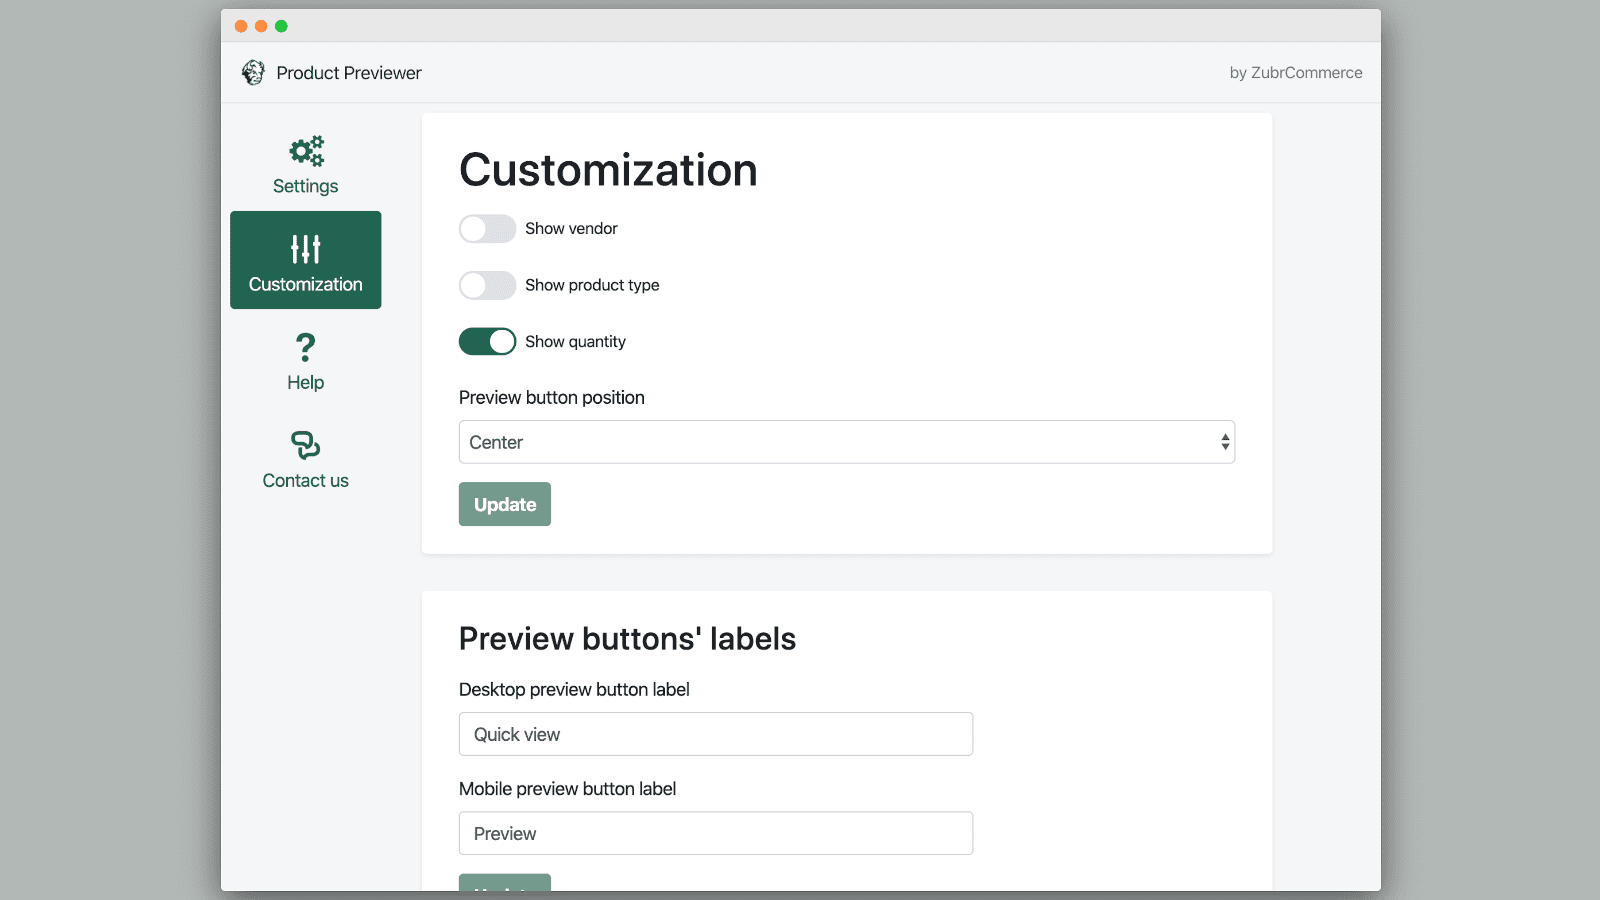 Product Previewer customization page